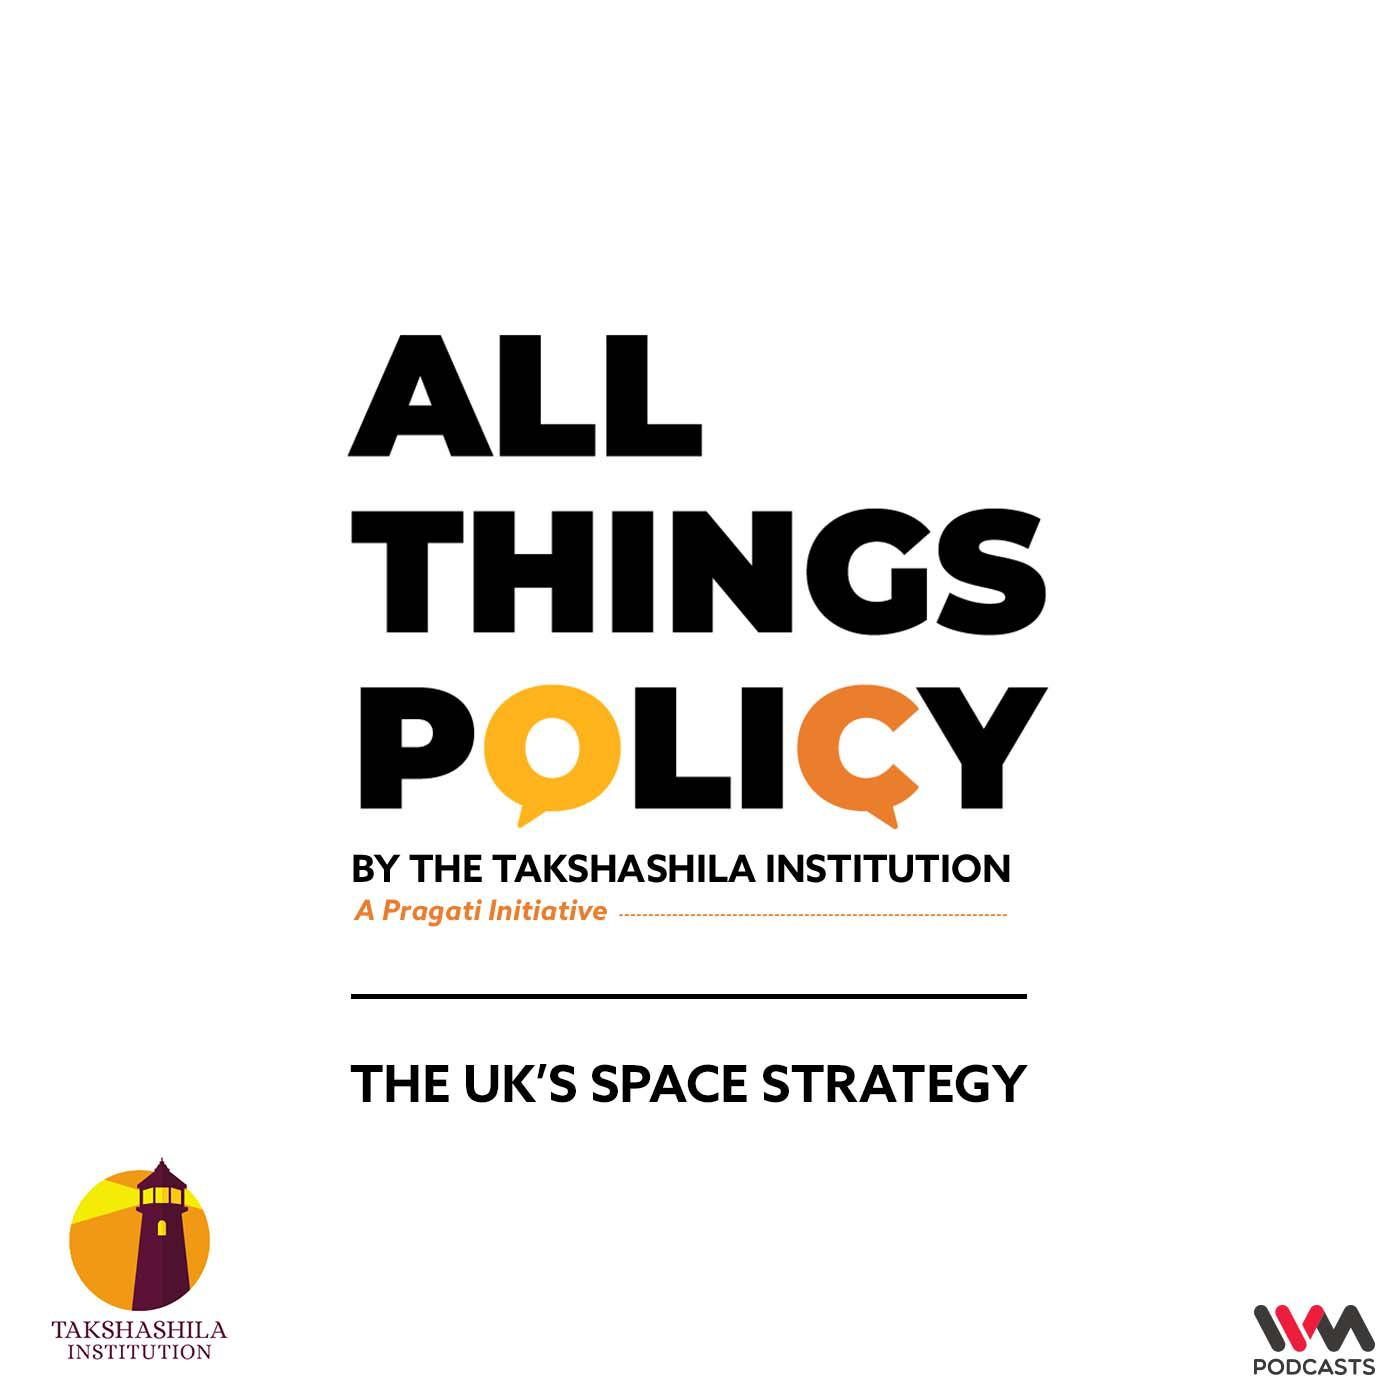 The UK's Space Strategy